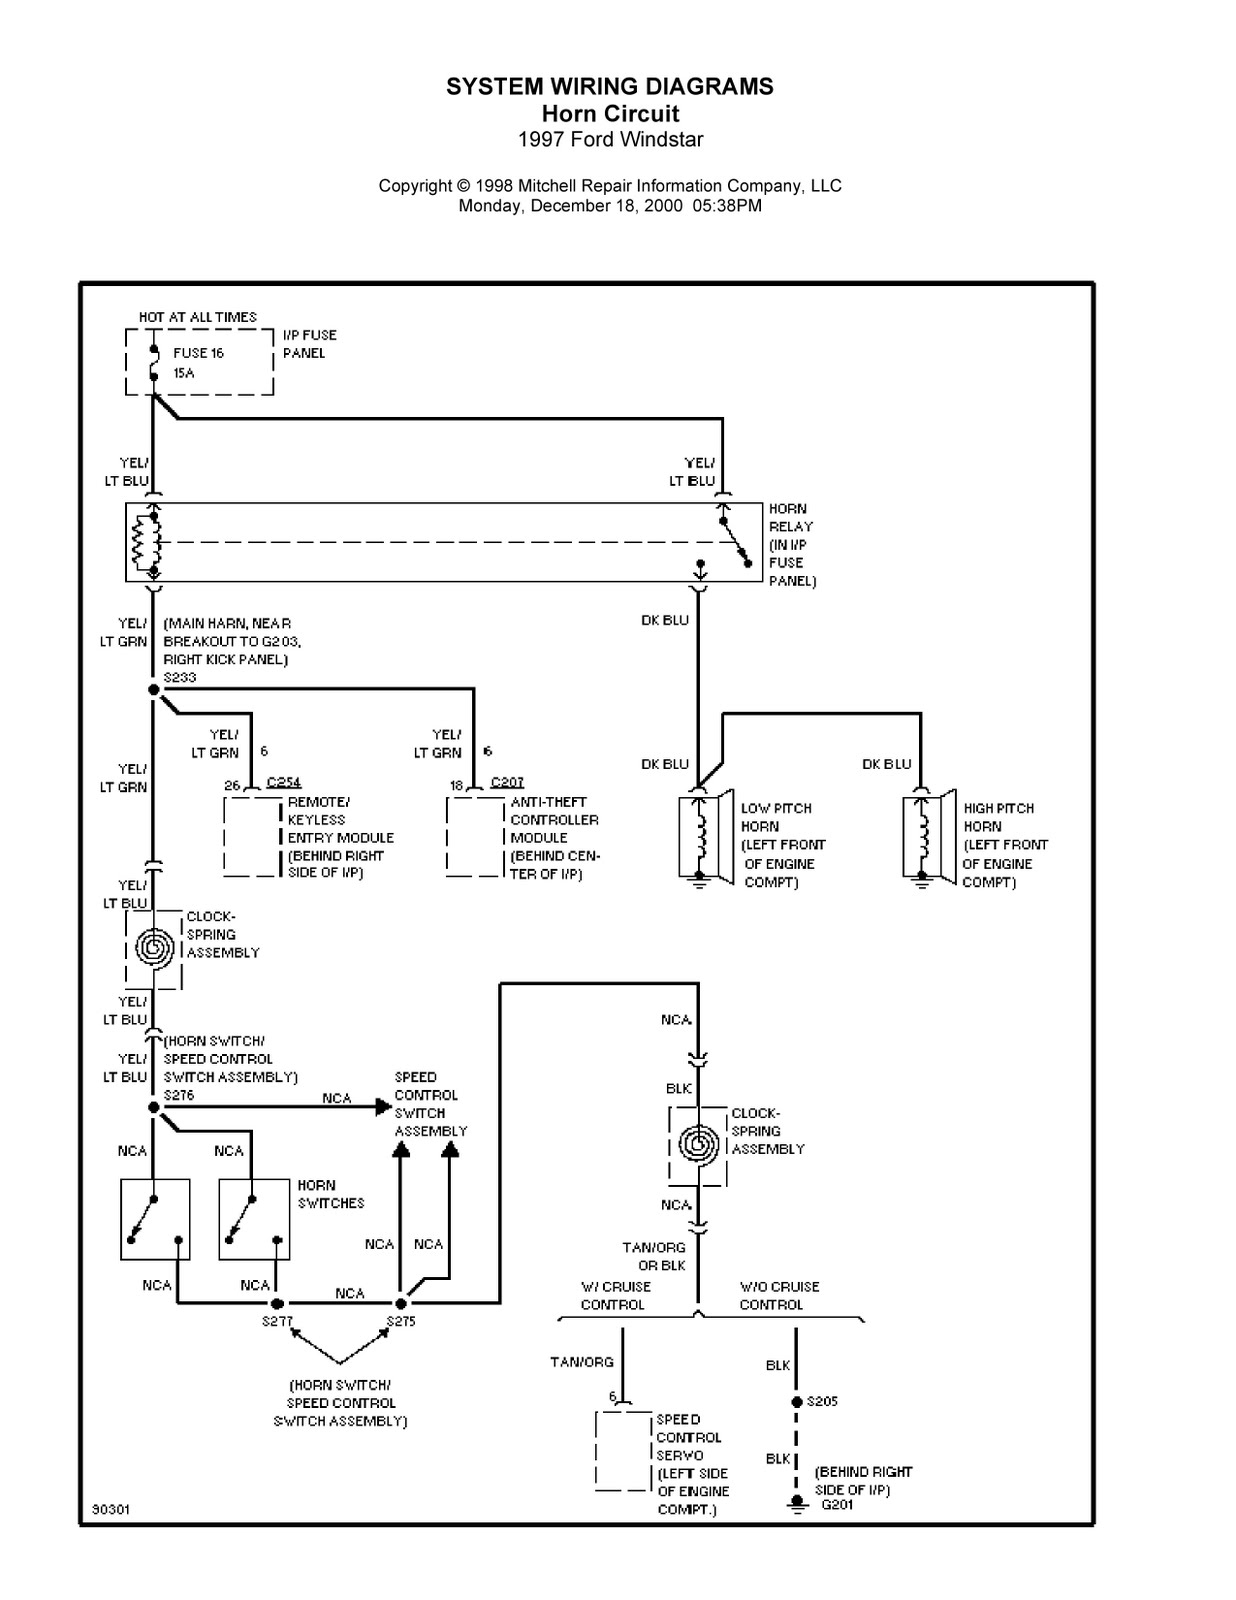 Complete System Wiring Diagrams 1997 Ford Windstar Fuse Diagram 2003 Pcm Location